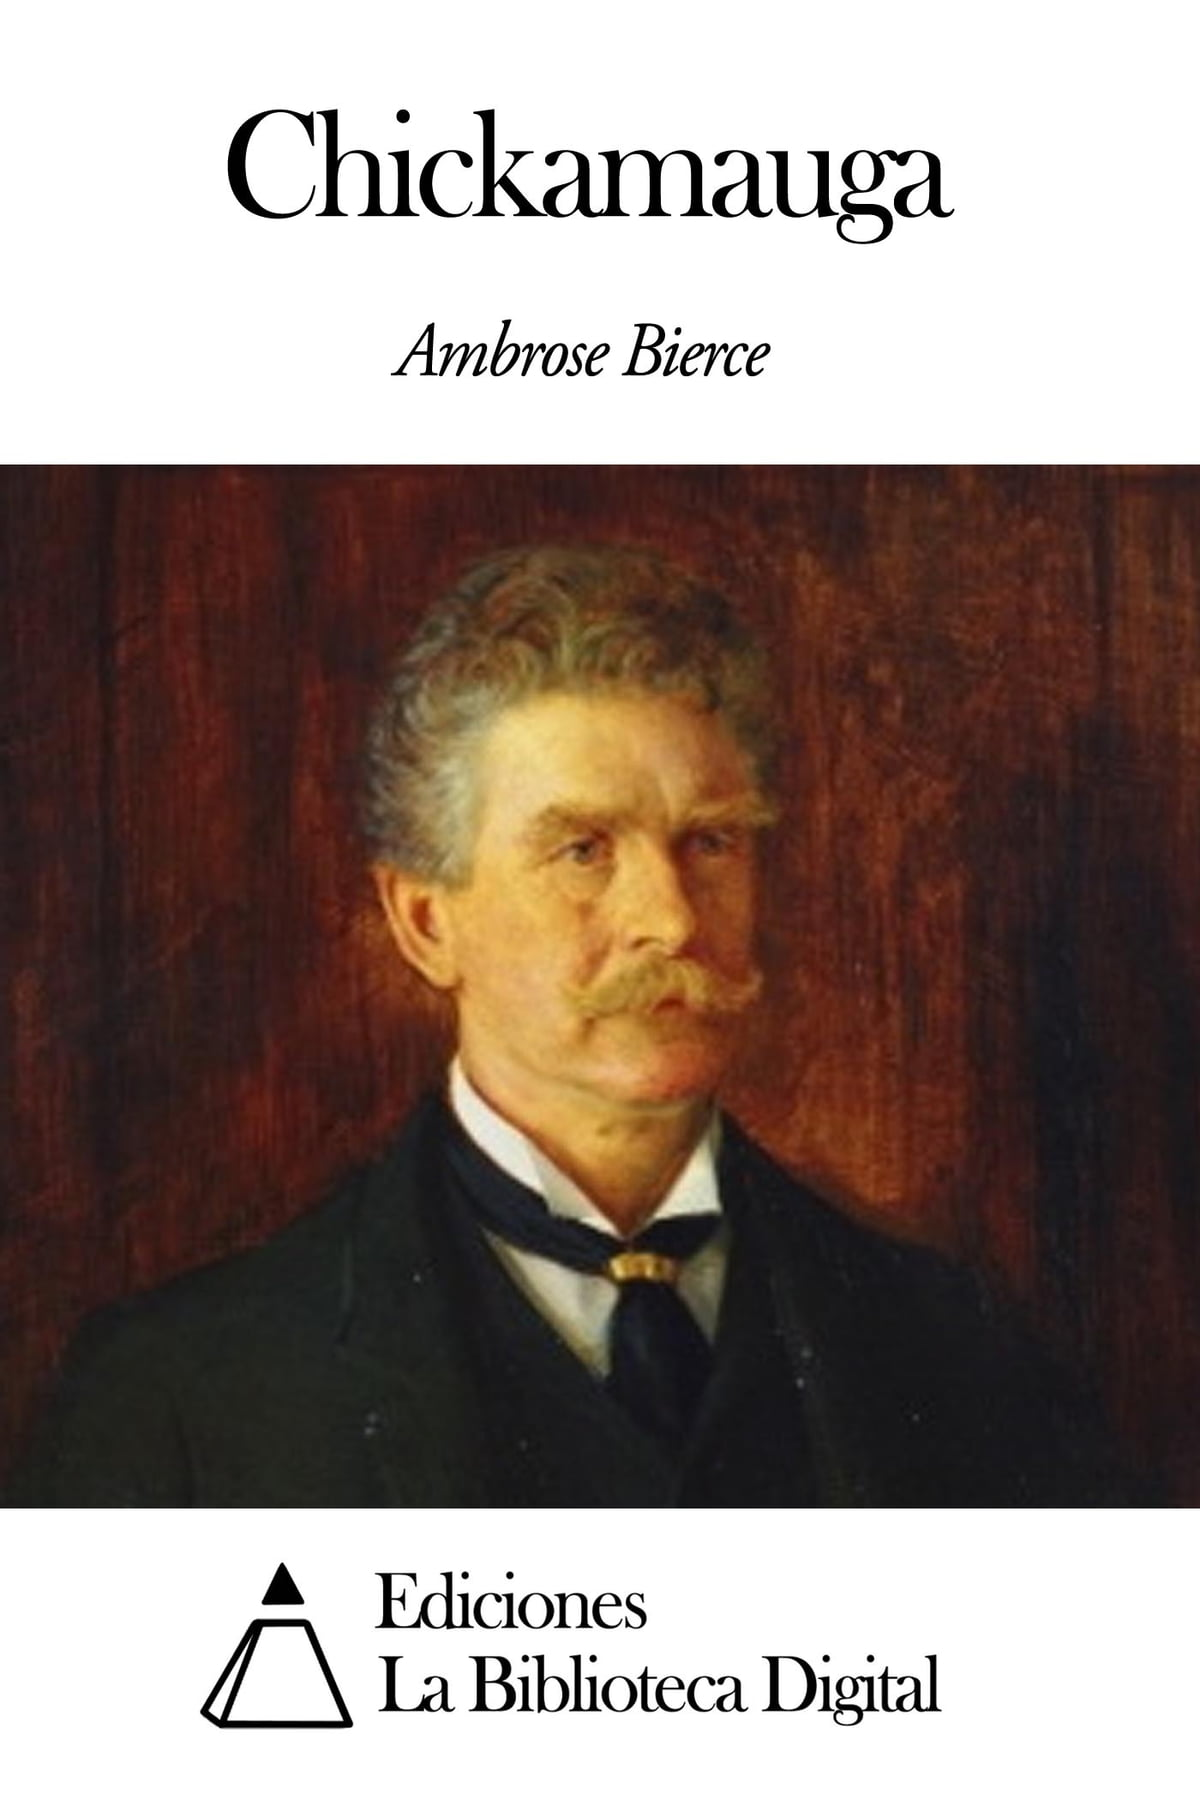 ambrose bierces typical themes and style represented in chickamauga As an editor, journalist, philosopher, and author, ambrose bierce (1842-1914) contended the romantic movement style in many ways, which some people considered harsh and bland the themes of his works usually involved the brutality of war, perception of time, and reality of certain situations.